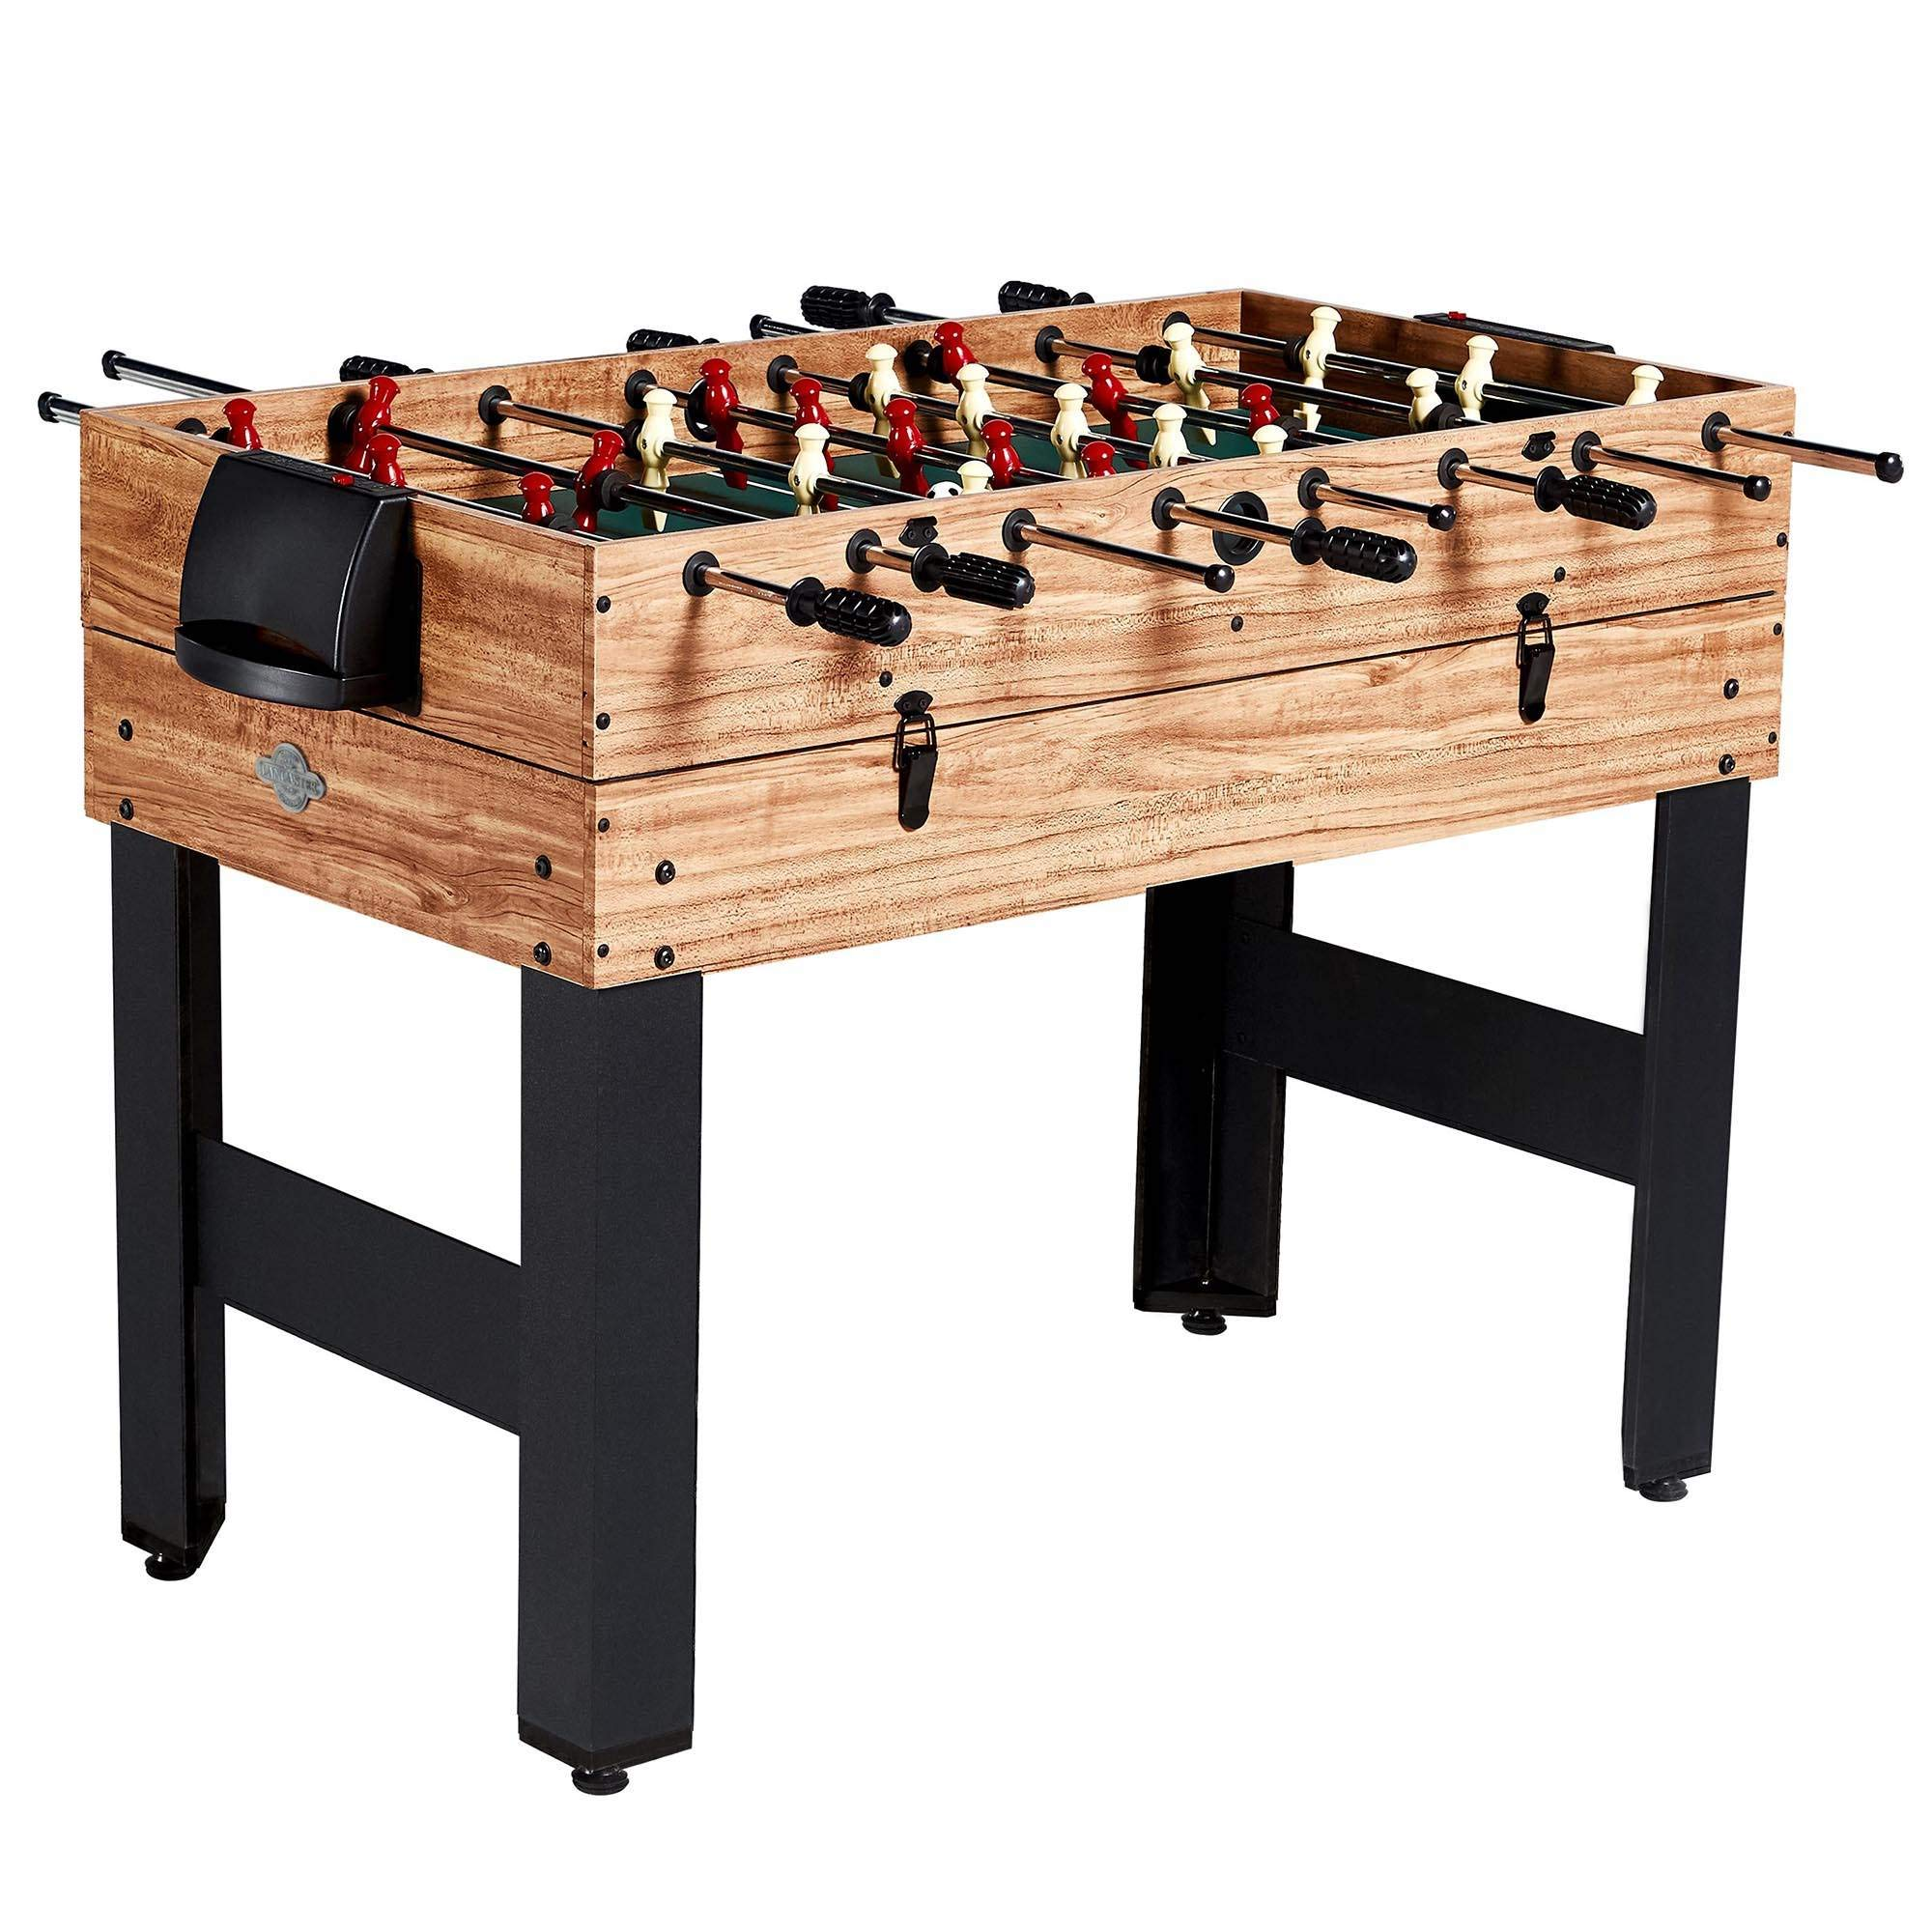 3. The Lancaster Three-in-One Combo Foosball Table